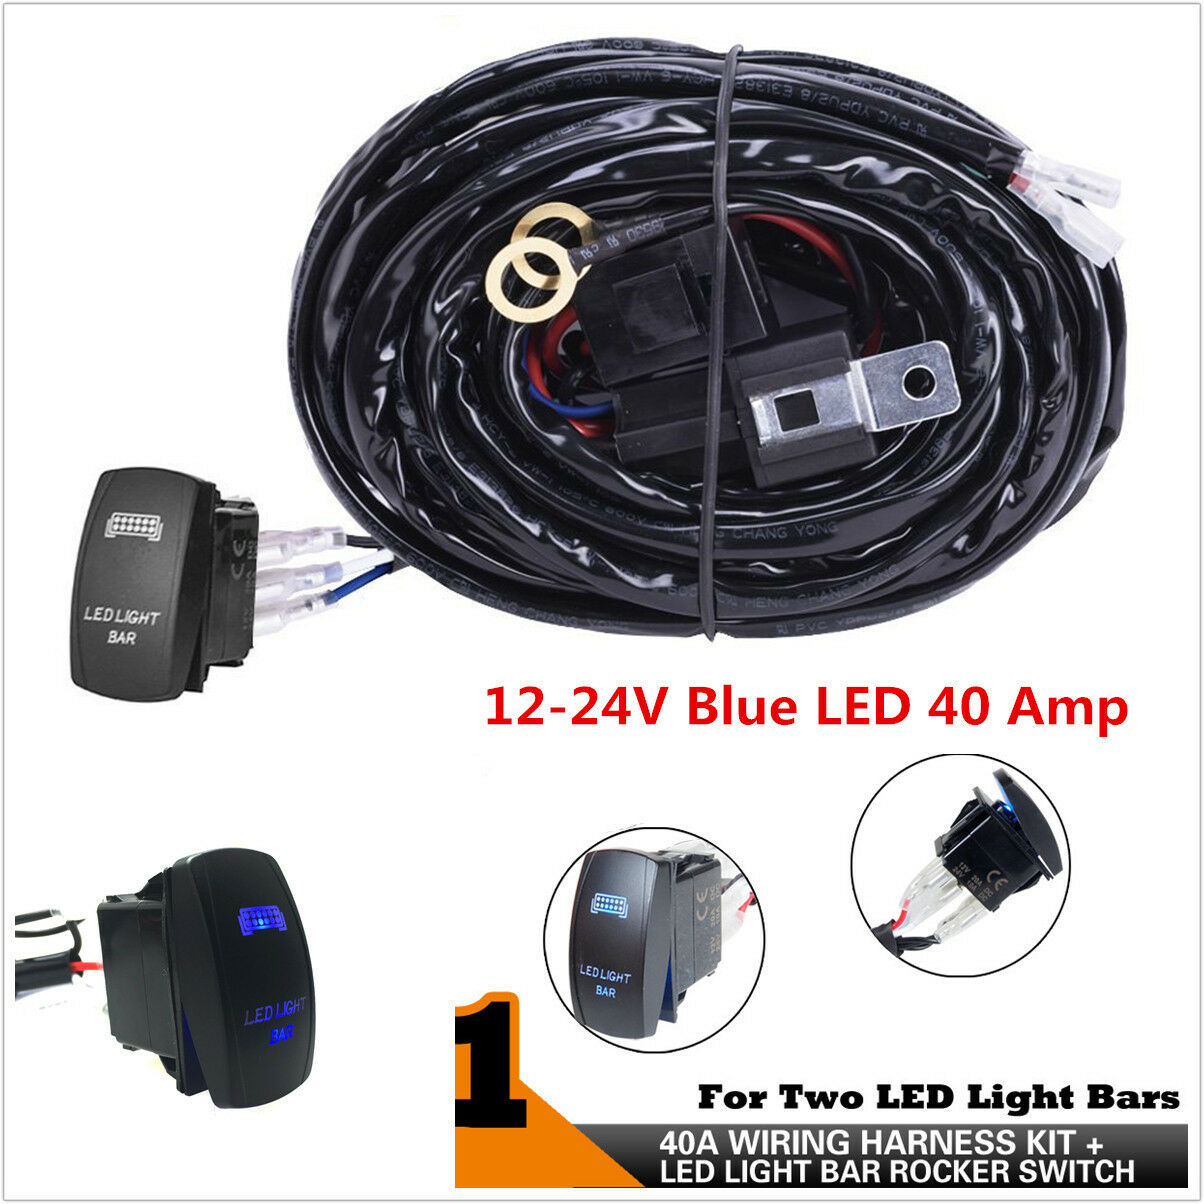 Atv Rv Roof Led Light Bar Wiring Harness 40 Amp Relay On Off Laser Kit For Norton Secured Powered By Verisign